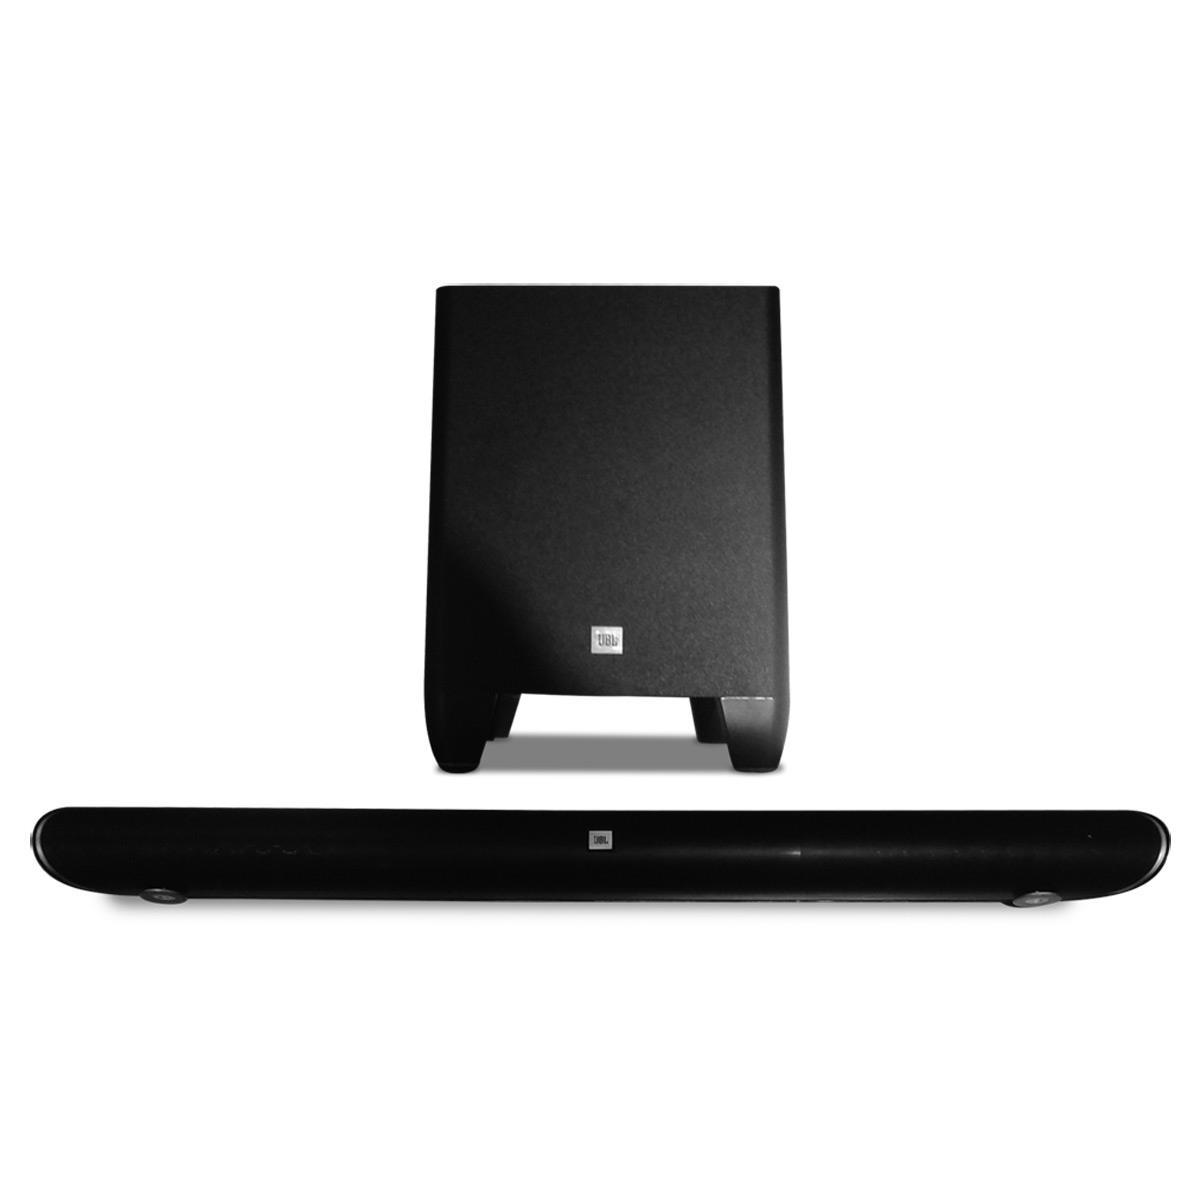 JBL SOUNDBAR JBL CINEMA SB350 BLACK